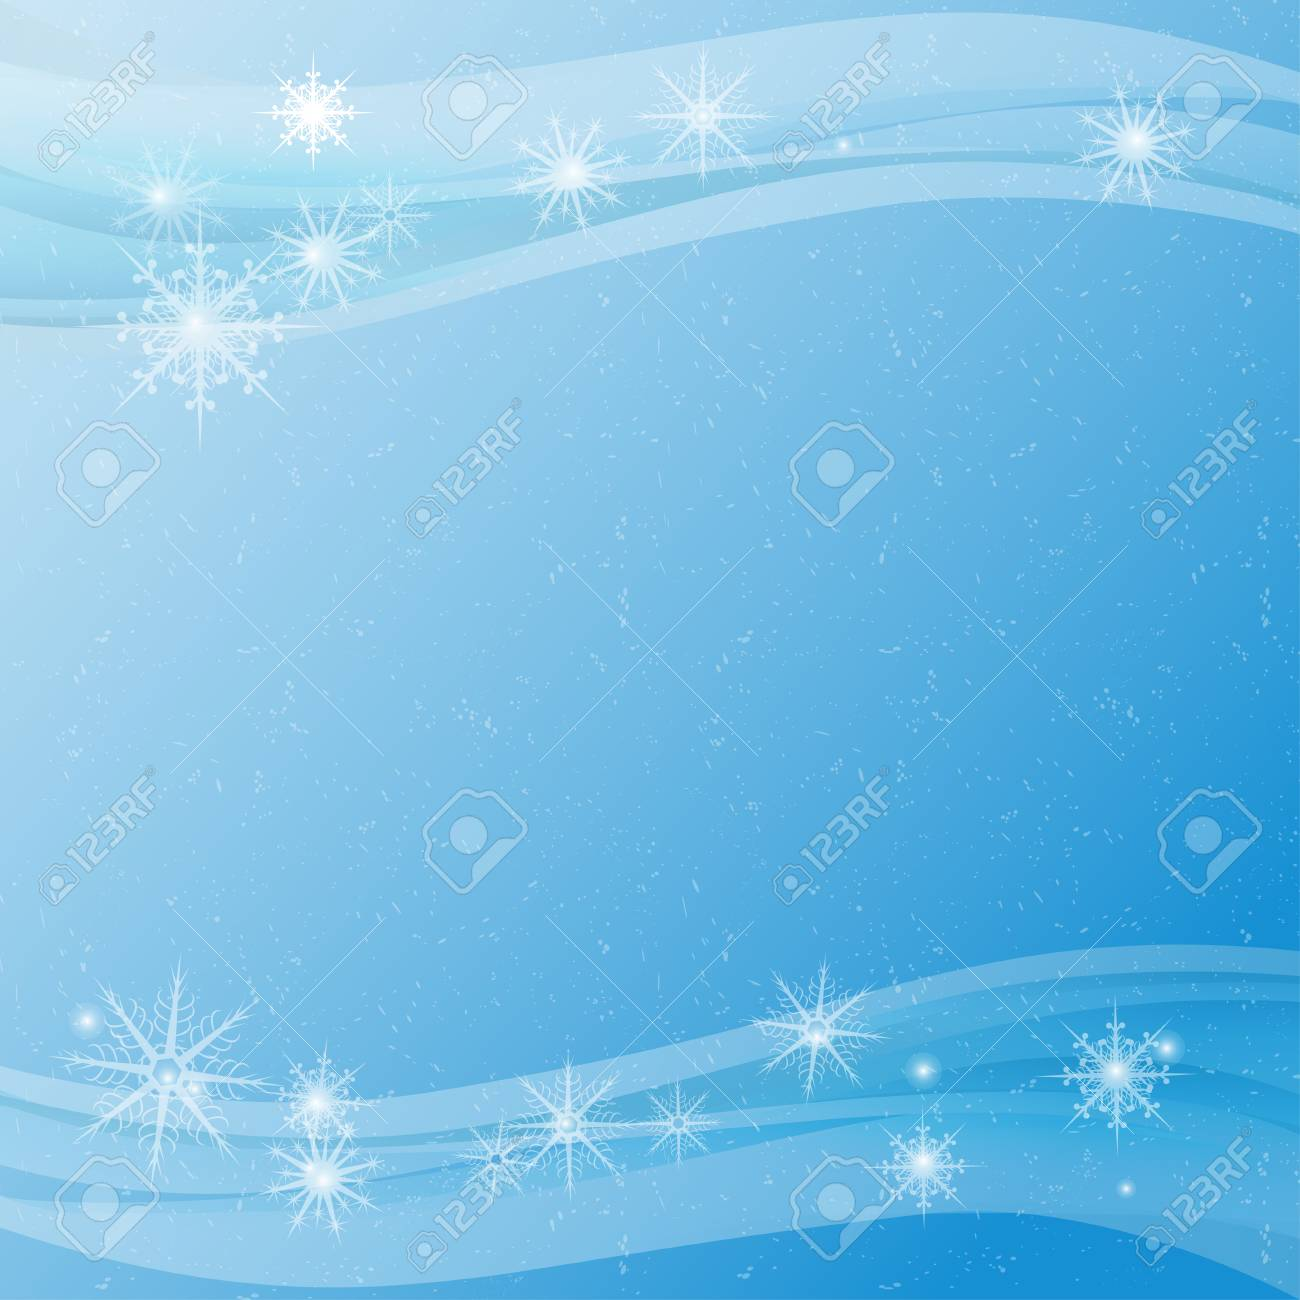 New Year. Celebration. Blue background, texture. Snow, snowflakes. Frame. Template, postcard. - 110255105